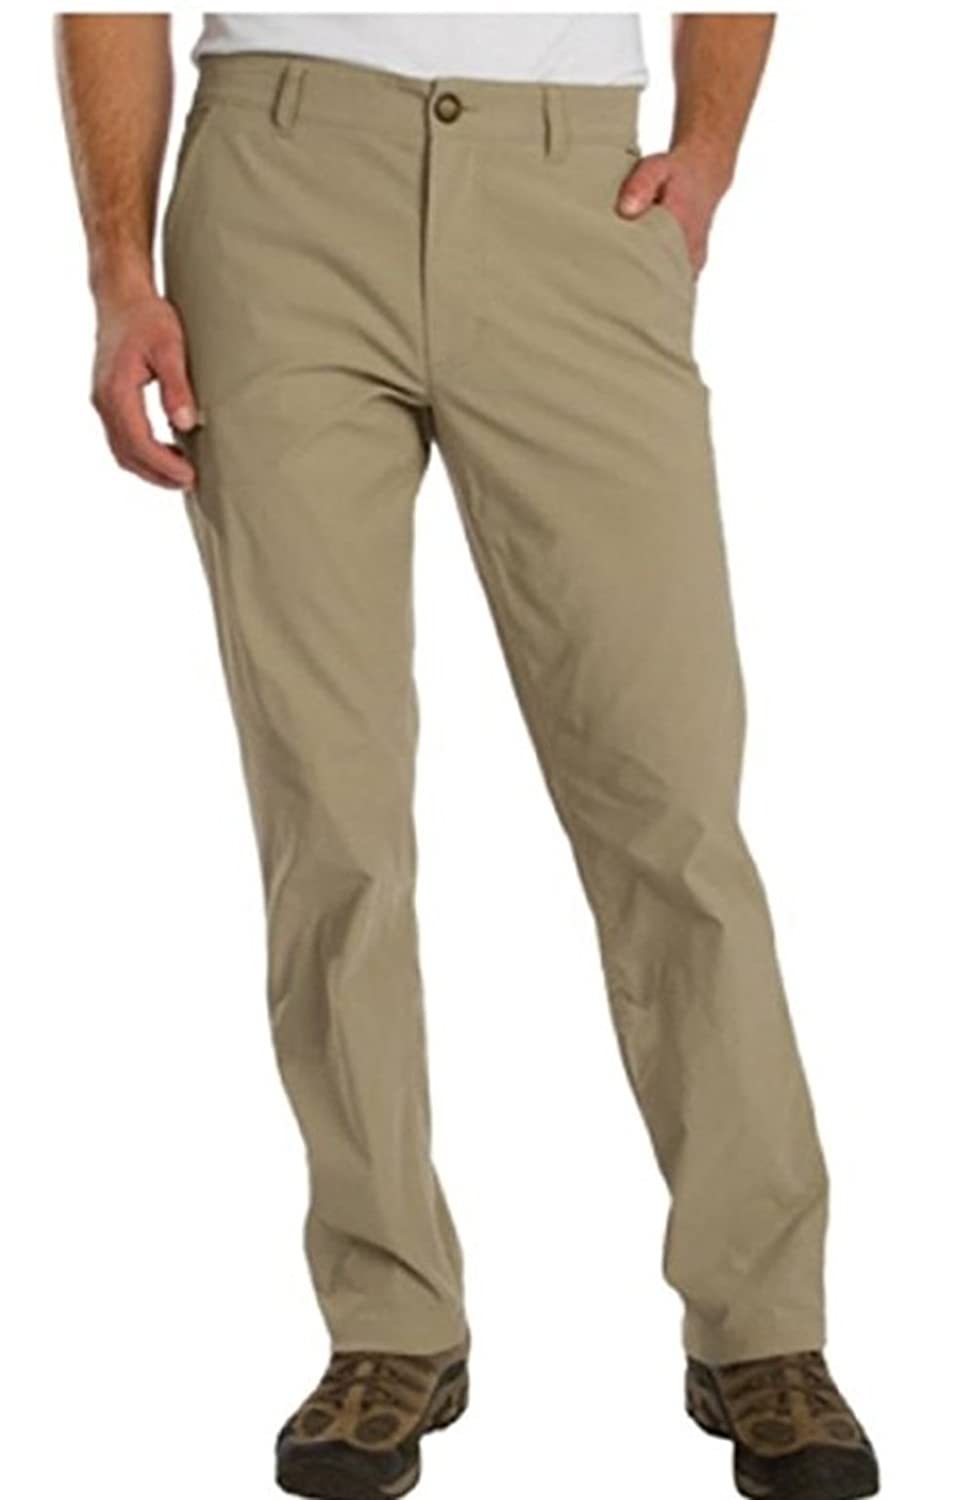 UnionBay Mens Rainier Travel Chino Pants (Variety Color & Size) (34X30, KHAKI)